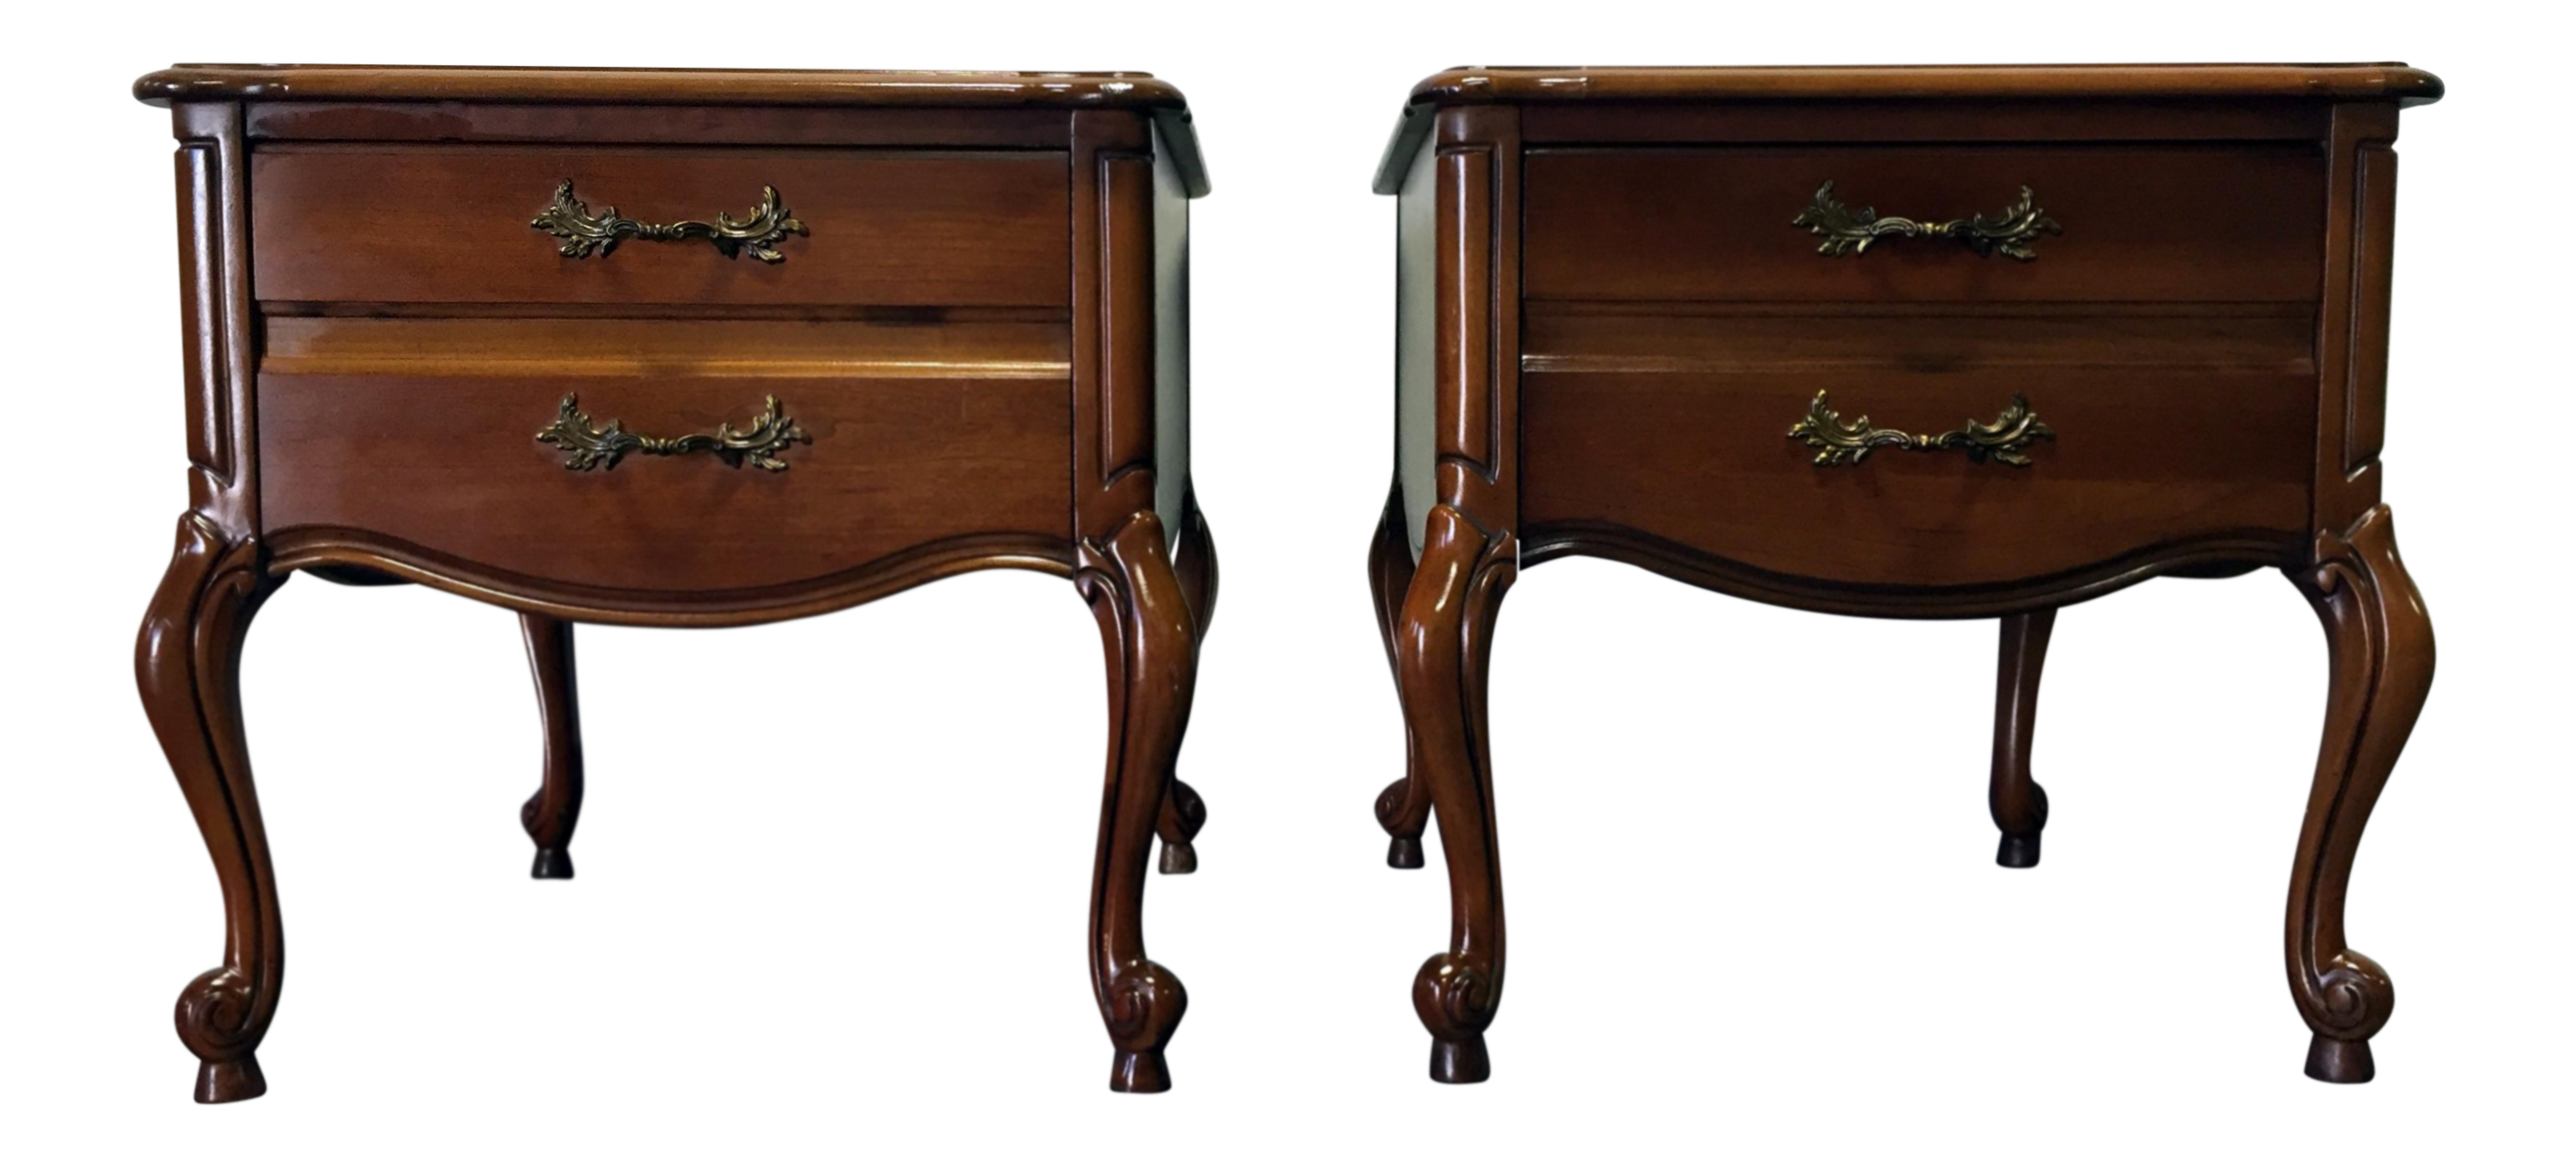 Lane Altavista Vintage French Provincial Style Cherry End Tables  A Pair |  Chairish